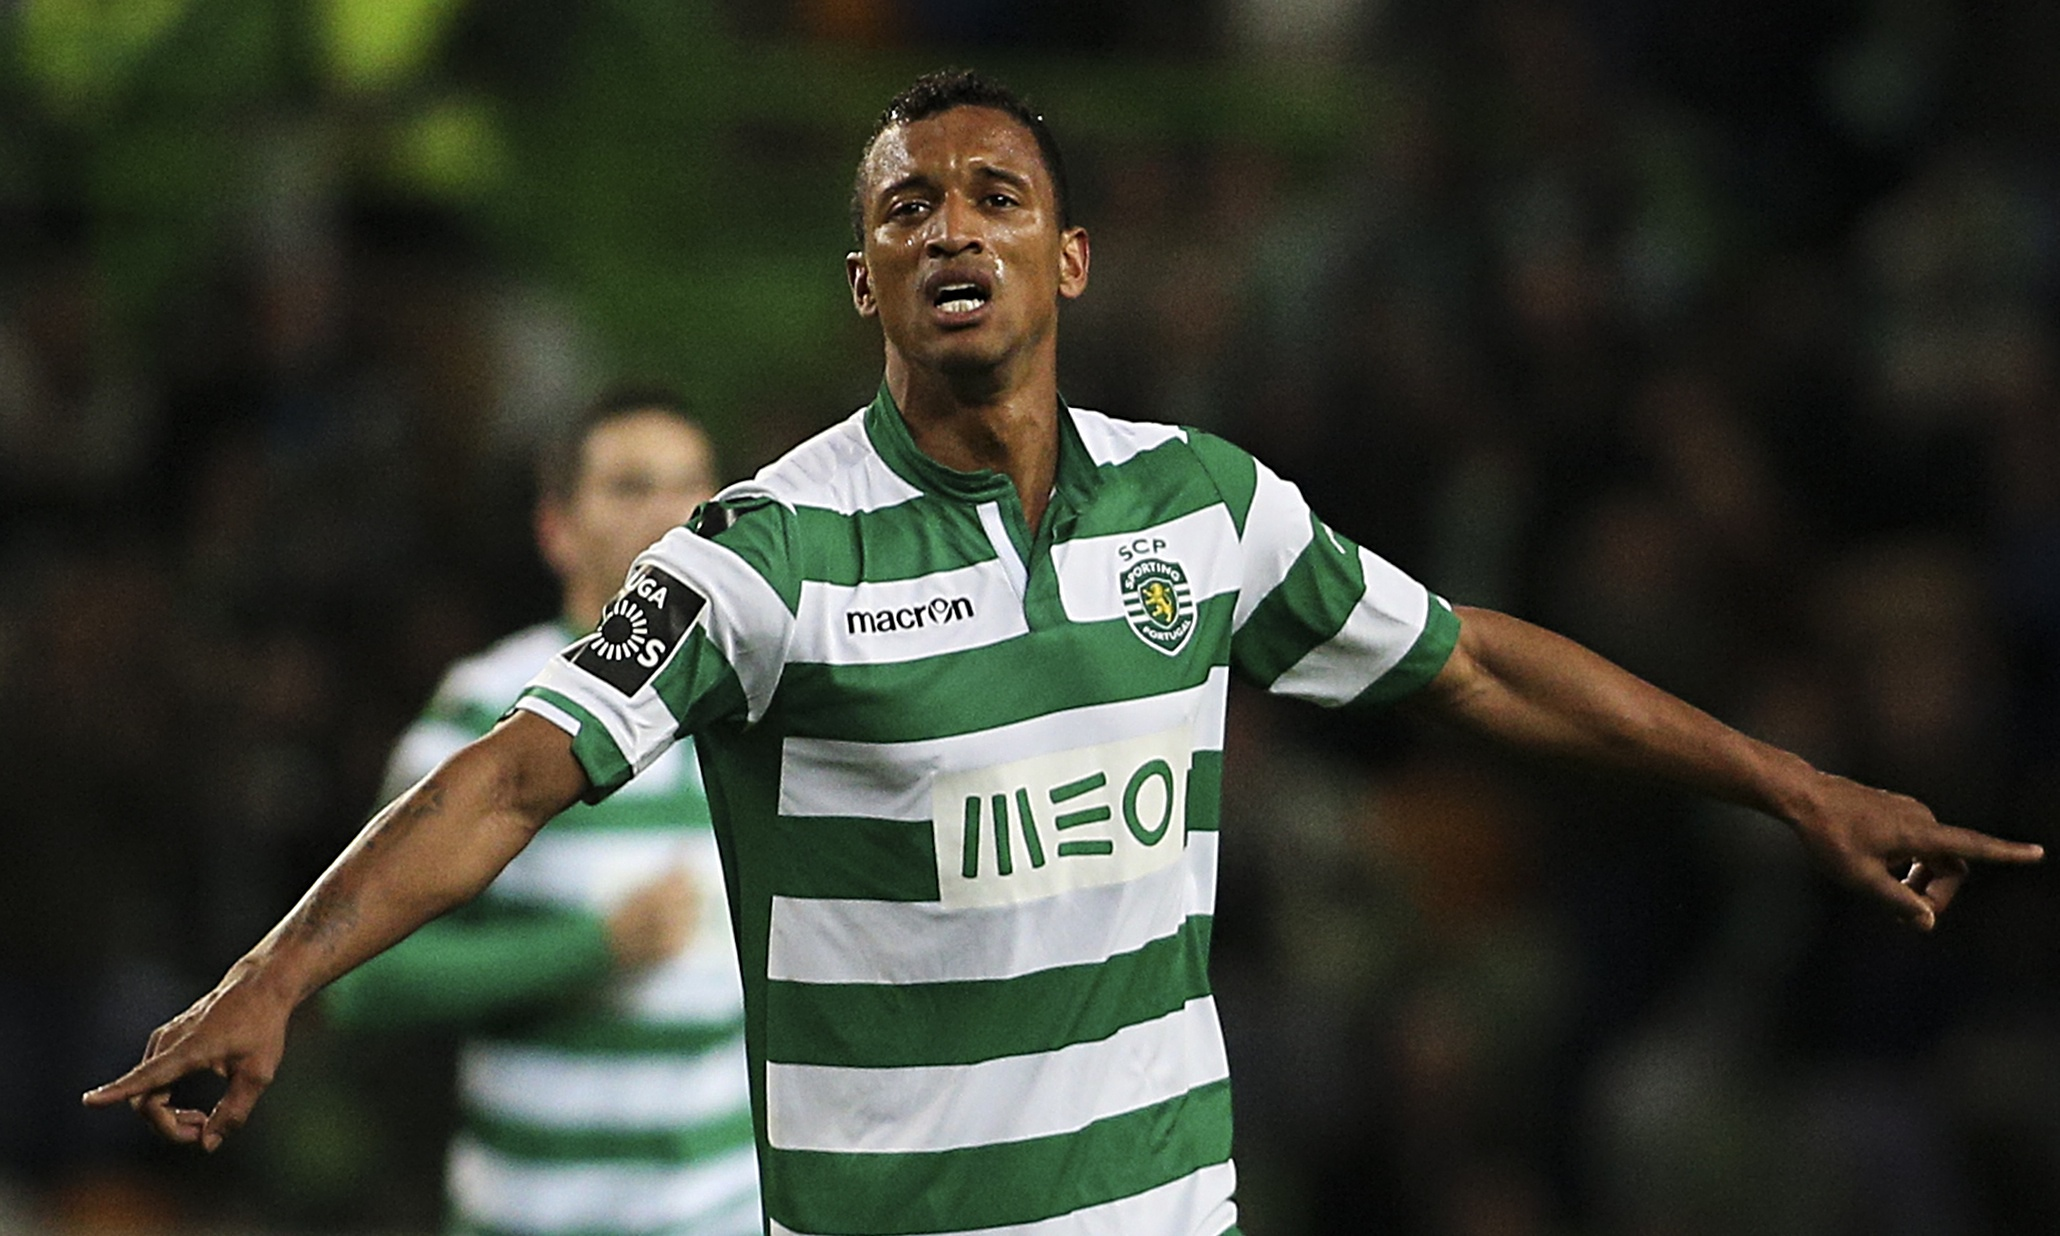 Nani ditches kids fundraiser in Northern Ireland because he was